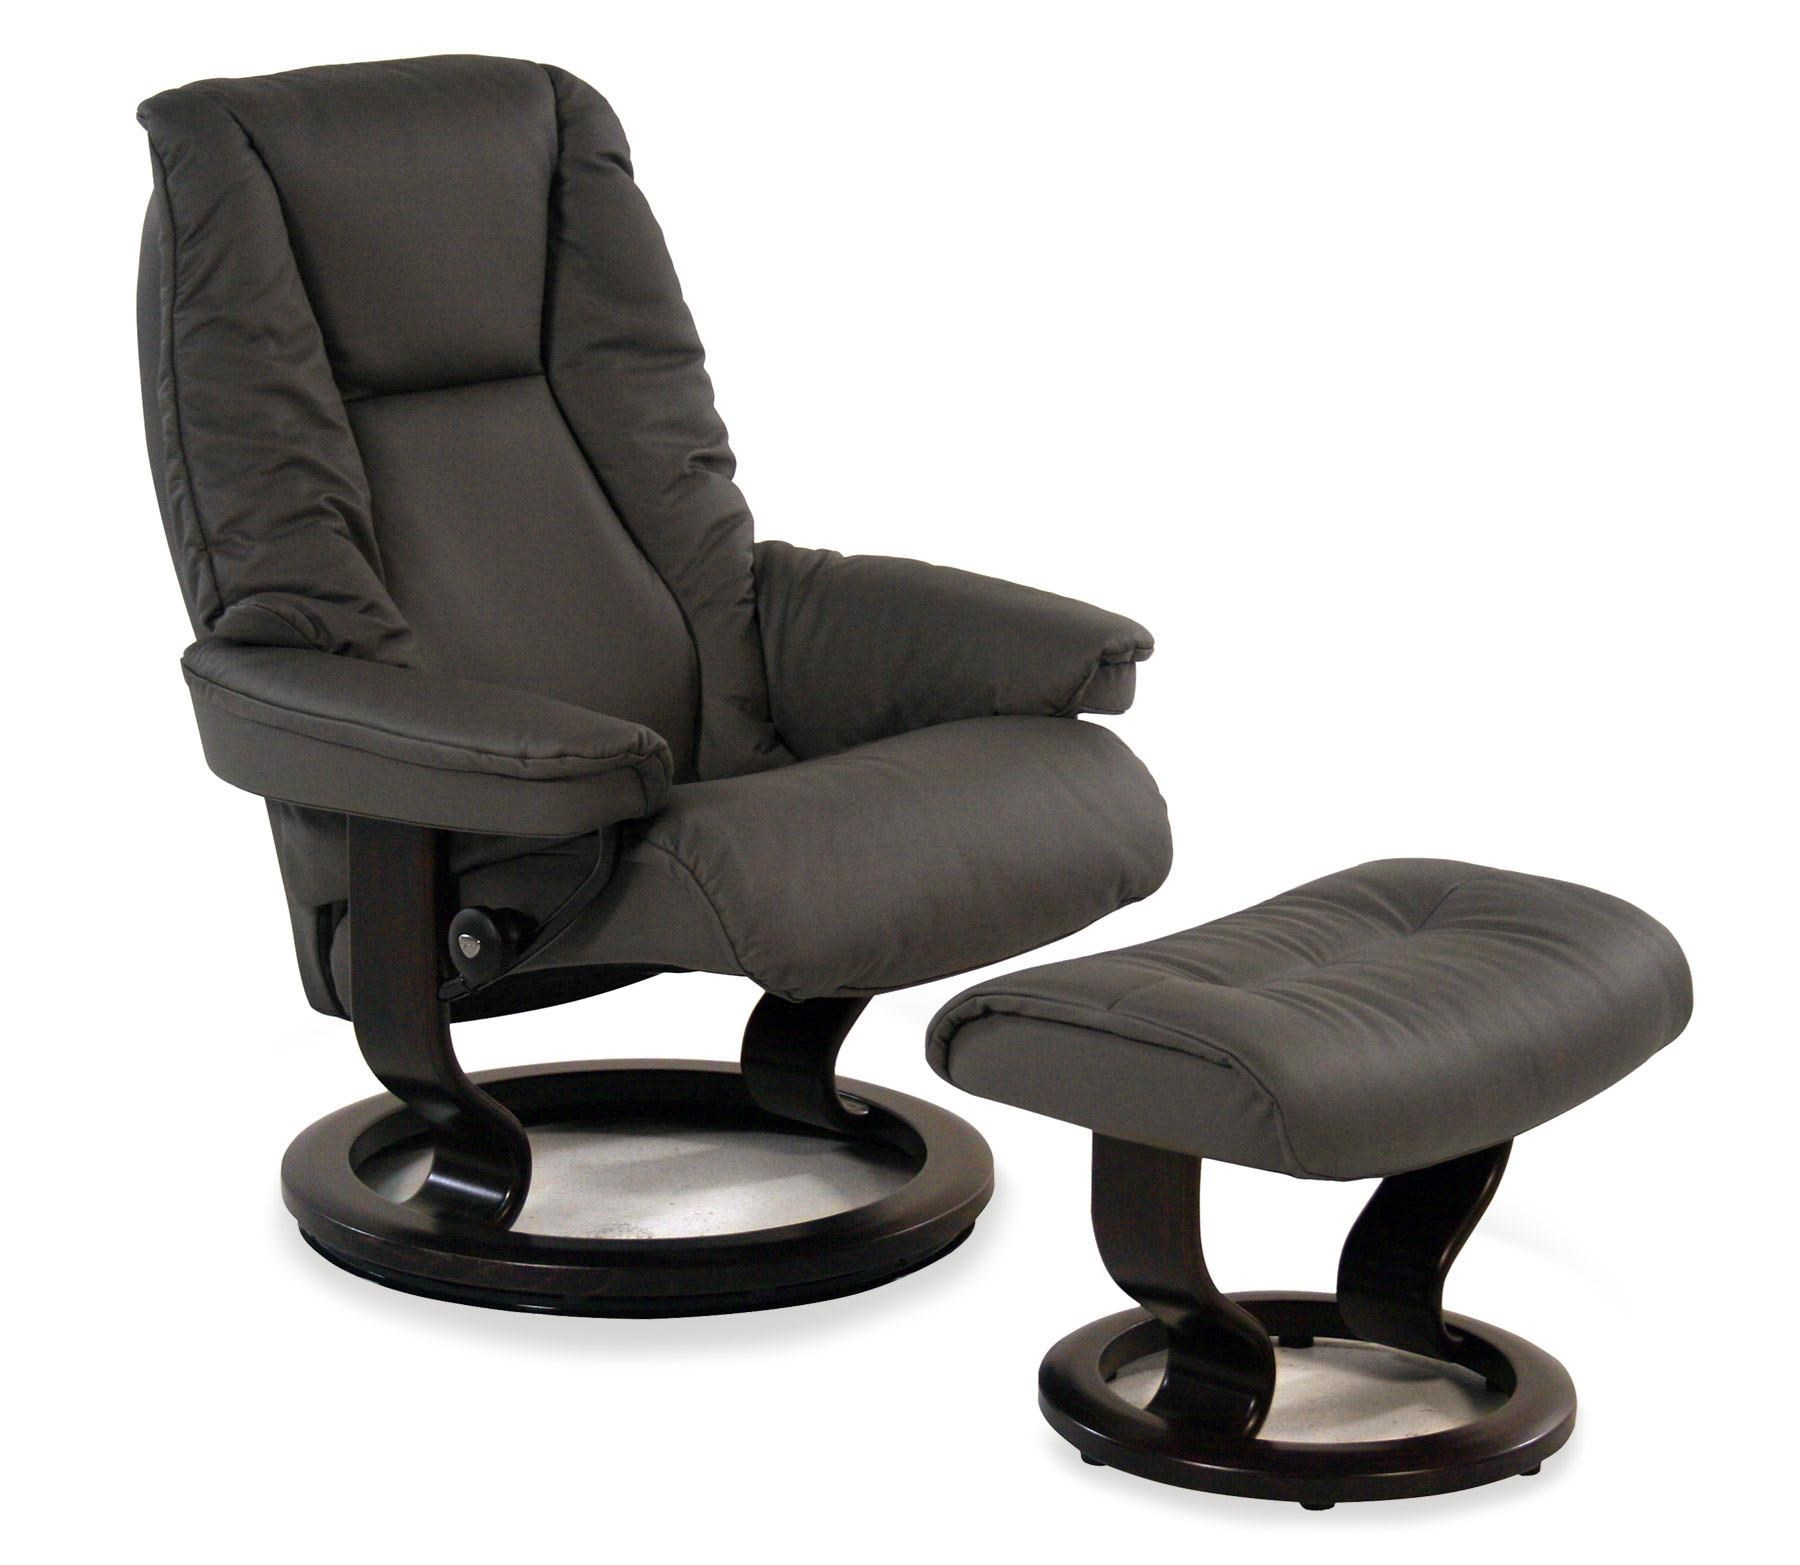 Stresless Live Medium Reclining Chair Ottoman Paloma Metal Grey W Classic Base By Stressless By Ekornes At Rotmans